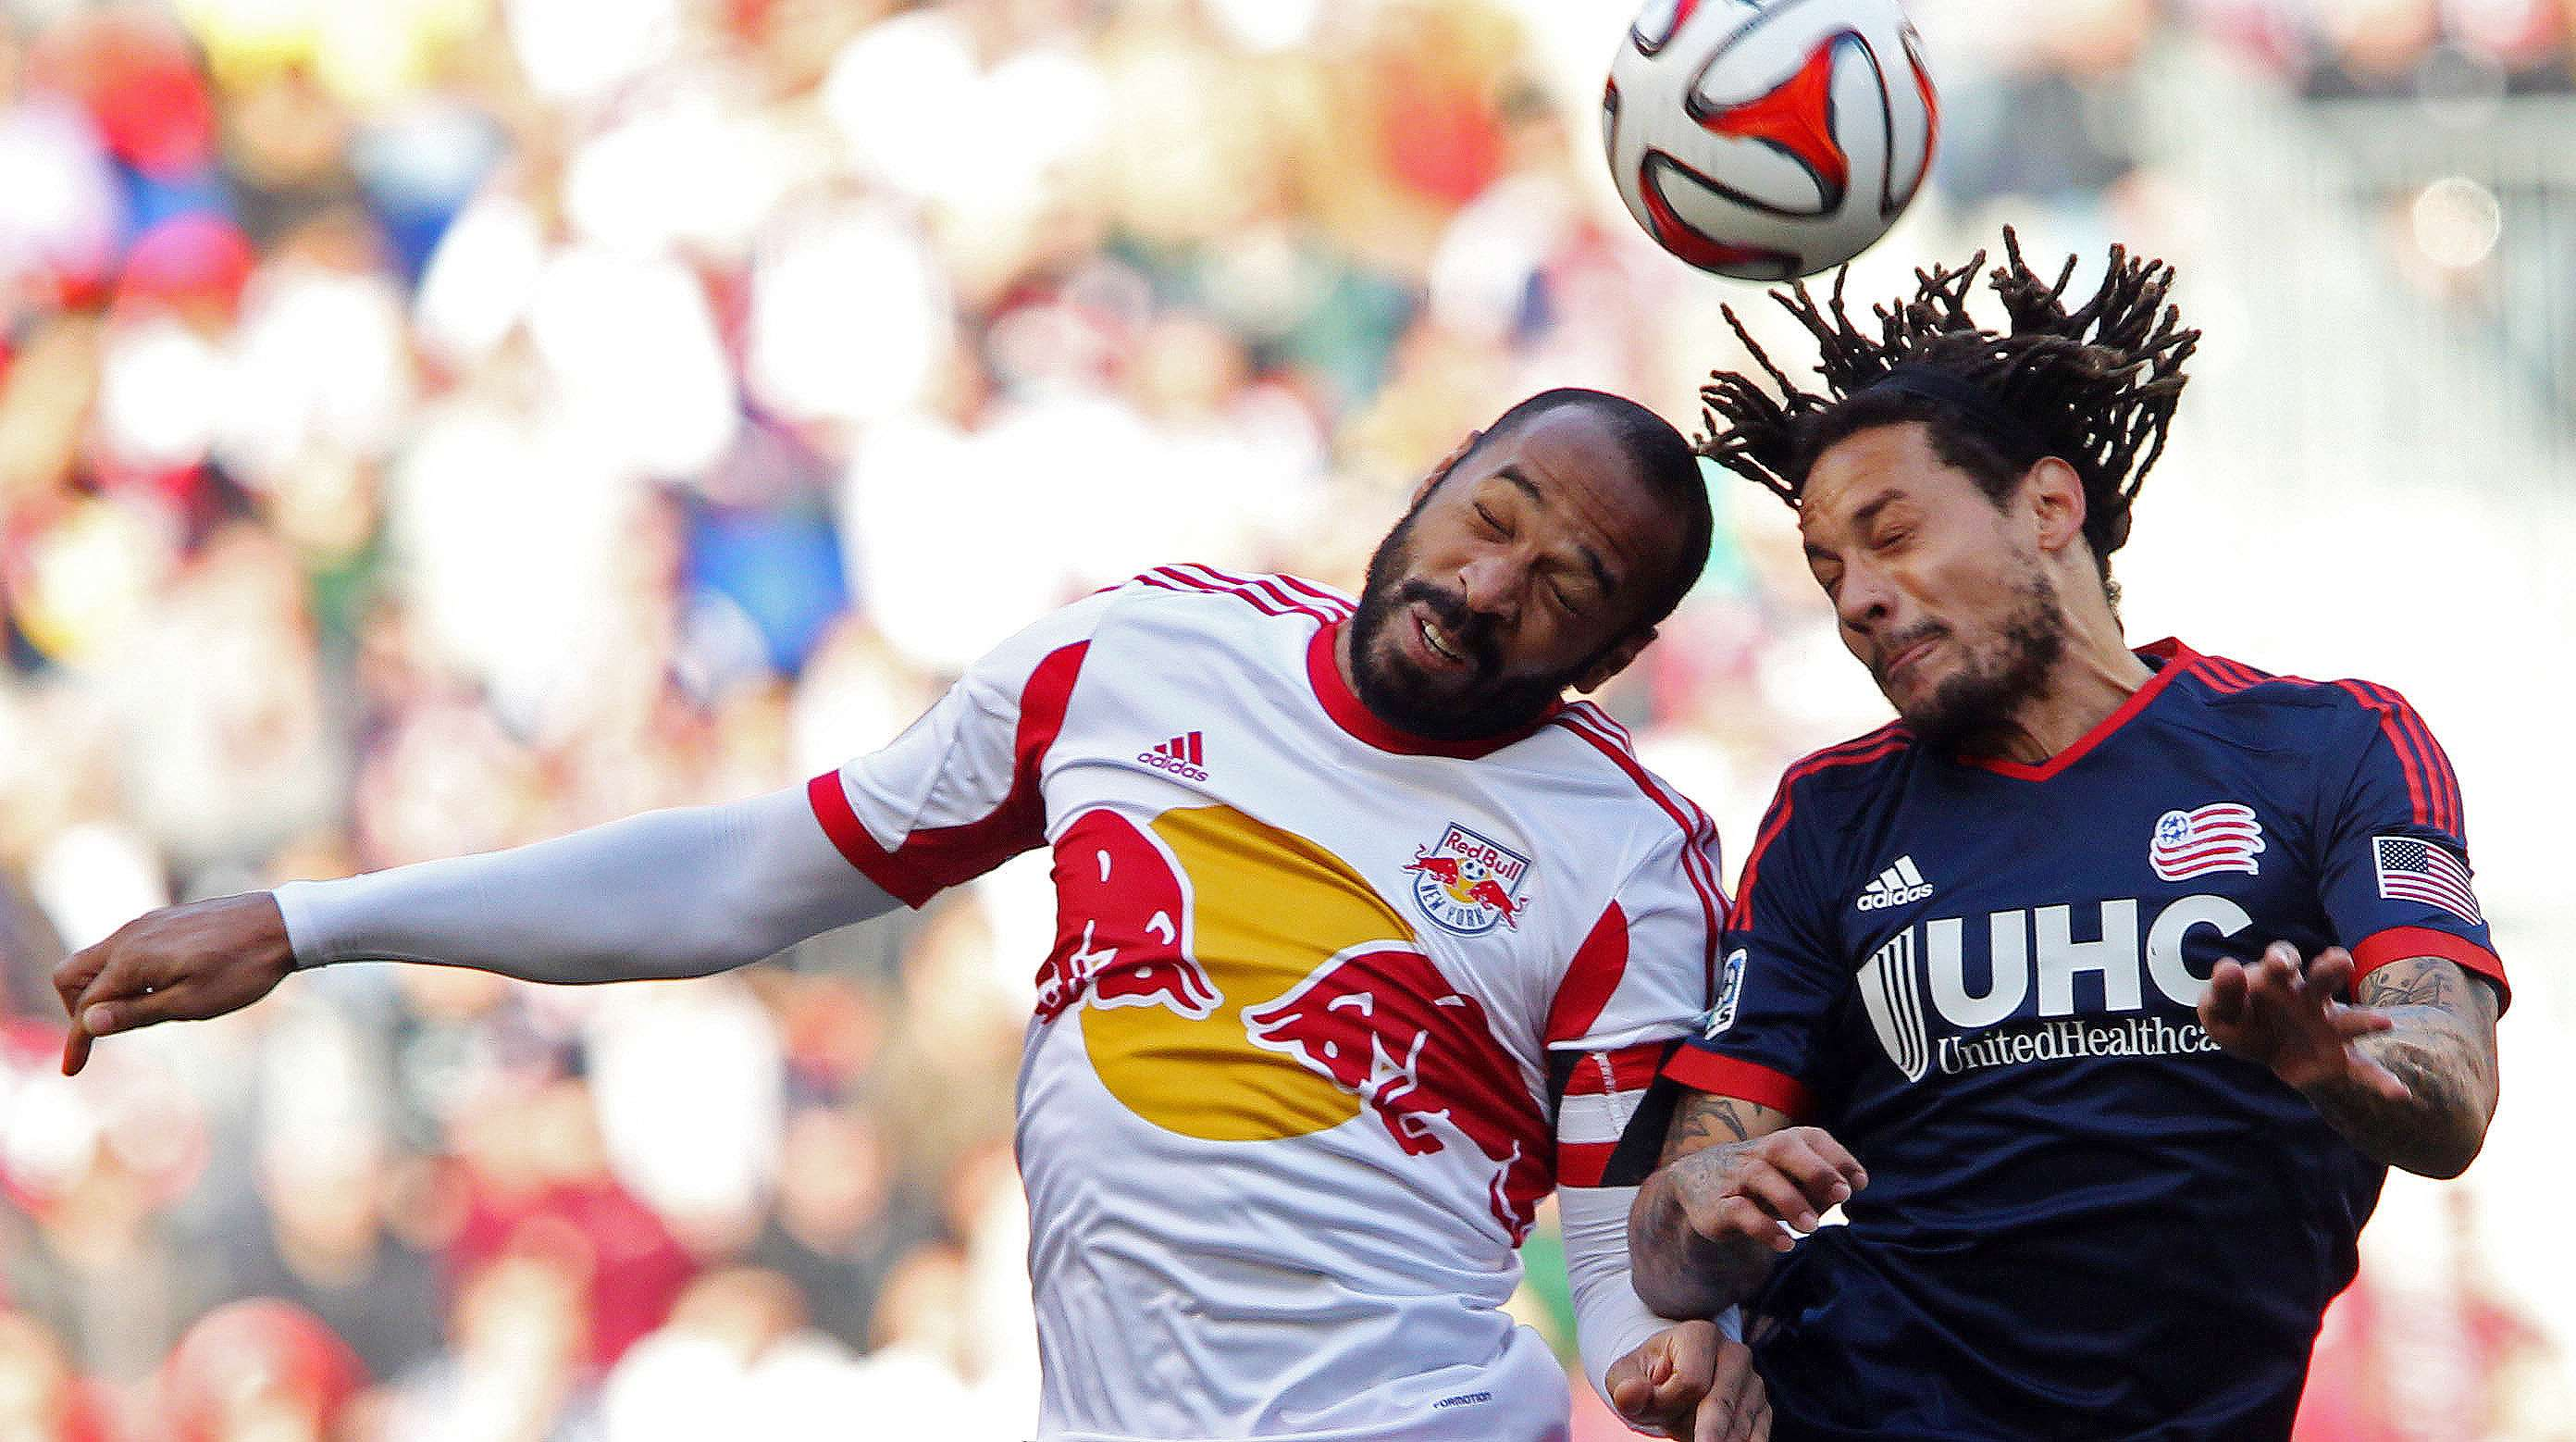 Nov 23, 2014; Harrison, NJ, USA; New York Red Bulls forward Thierry Henry (14) and New England Revolution midfielder Jermaine Jones (13) attempt to head the ball during the first half of the Eastern Conference Championship at Red Bull Arena. Mandatory Credit: Noah K. Murray-USA TODAY Sports Foto: Noah K. Murray/USA Today Sports